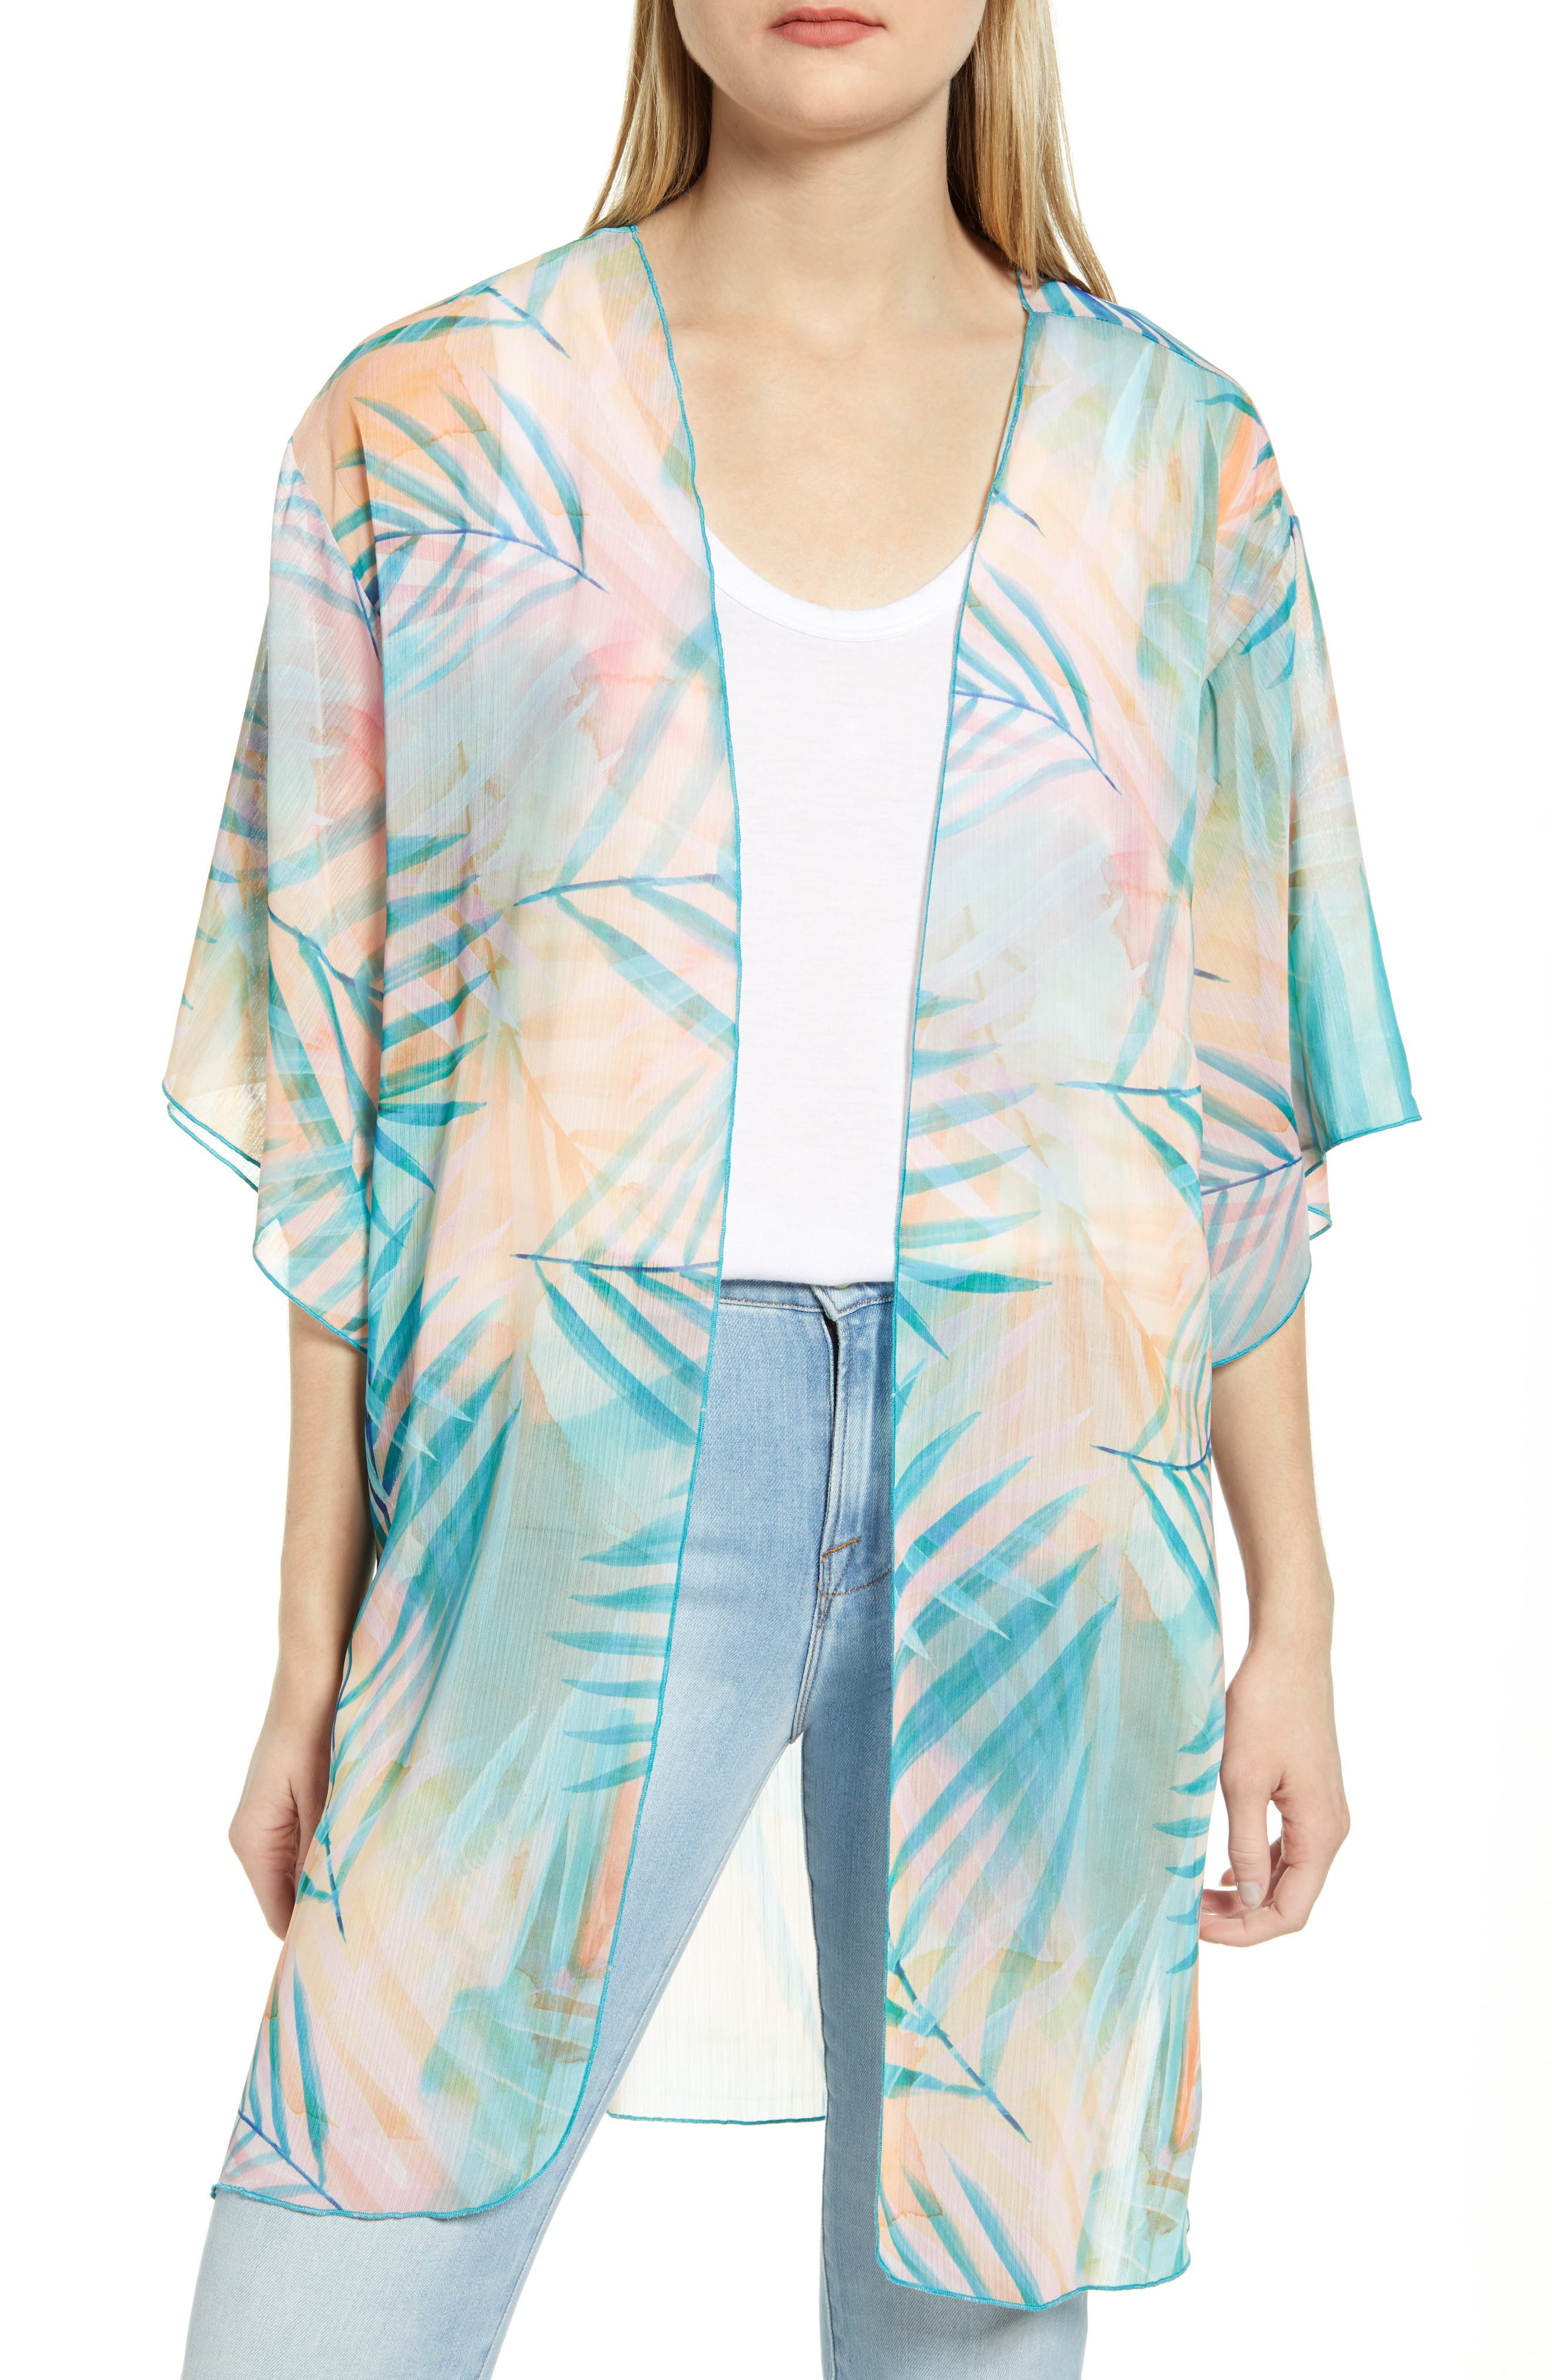 A dreamy palm print enlivens this light and airy overlay designed with a versatile open front. Style Name: Wit & Wisdom Palm Print Open Front Cardigan. Style Number: 6059558. Available in stores.